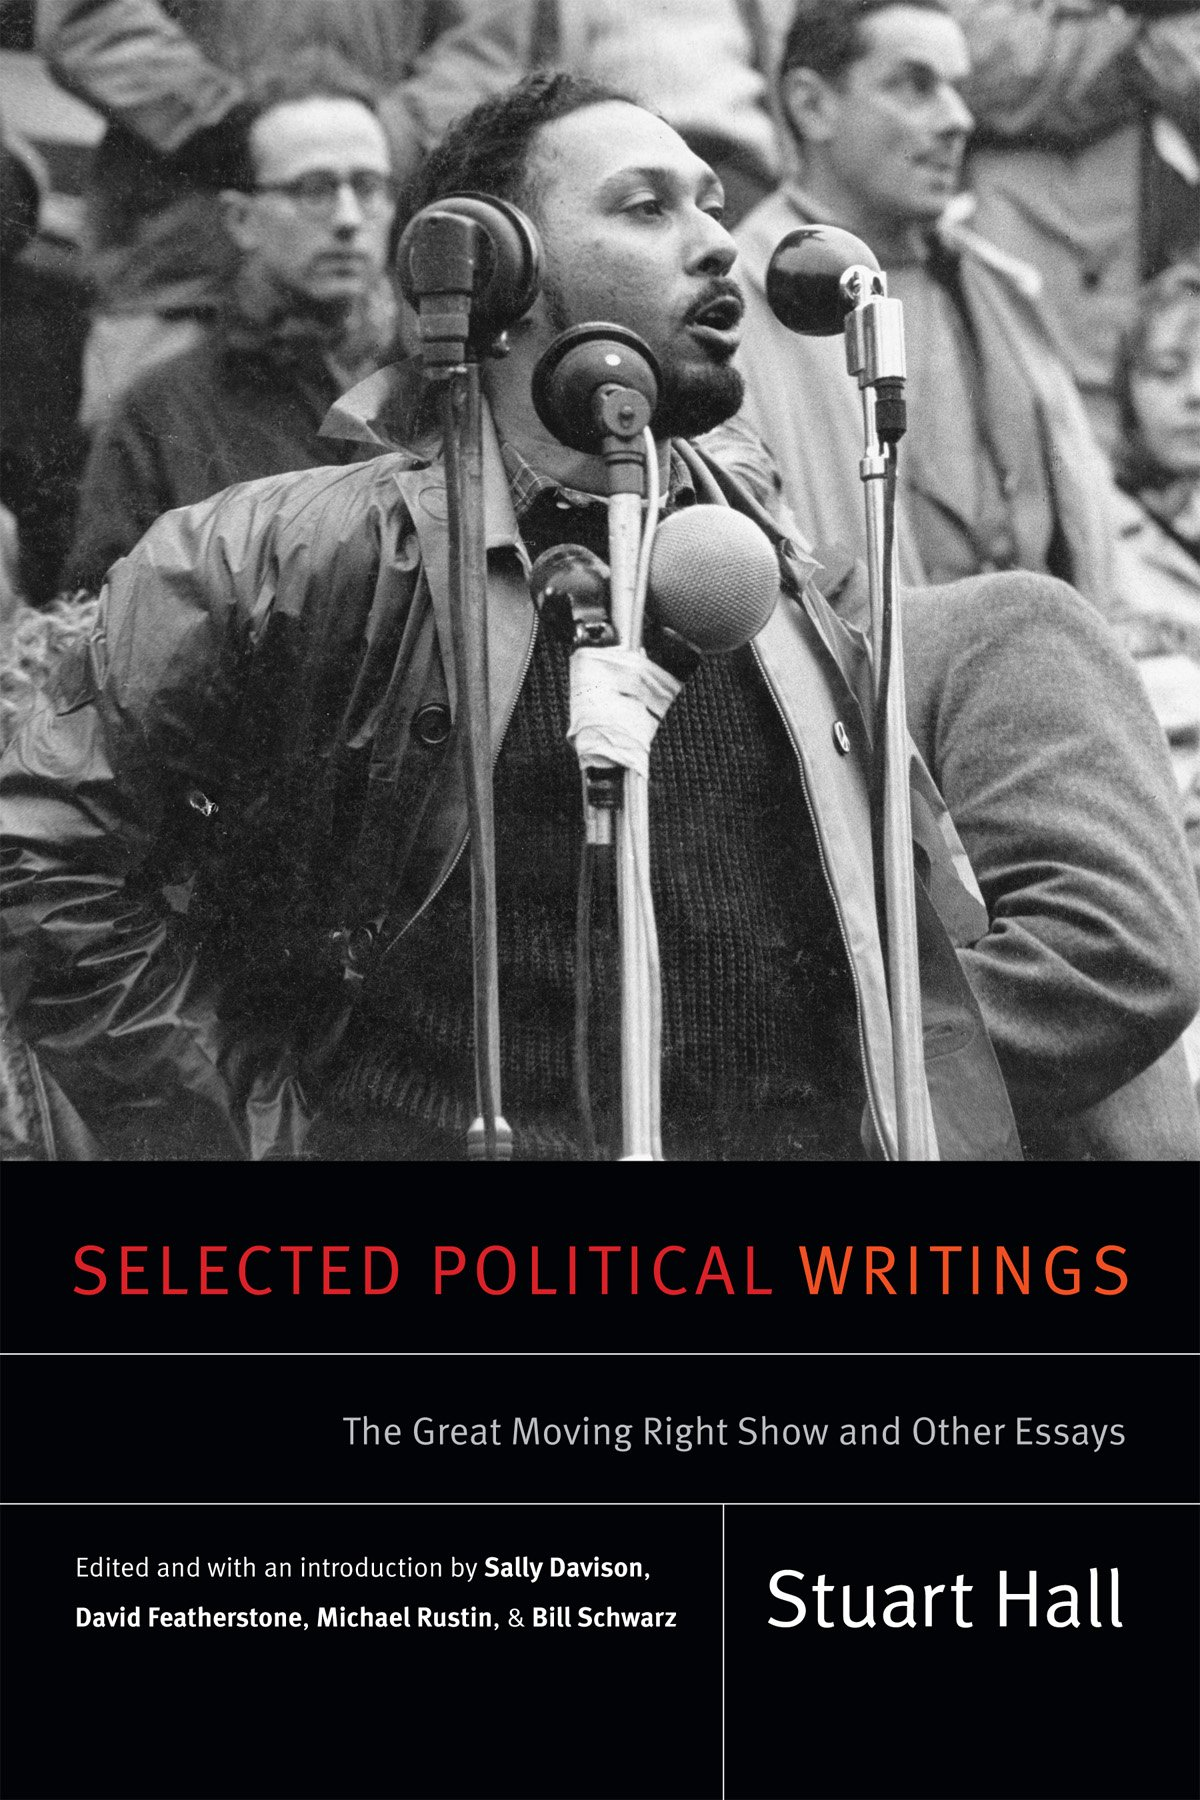 selected political writings the great moving right show and other selected political writings the great moving right show and other essays stuart hall selected writings stuart hall sally davison david featherstone